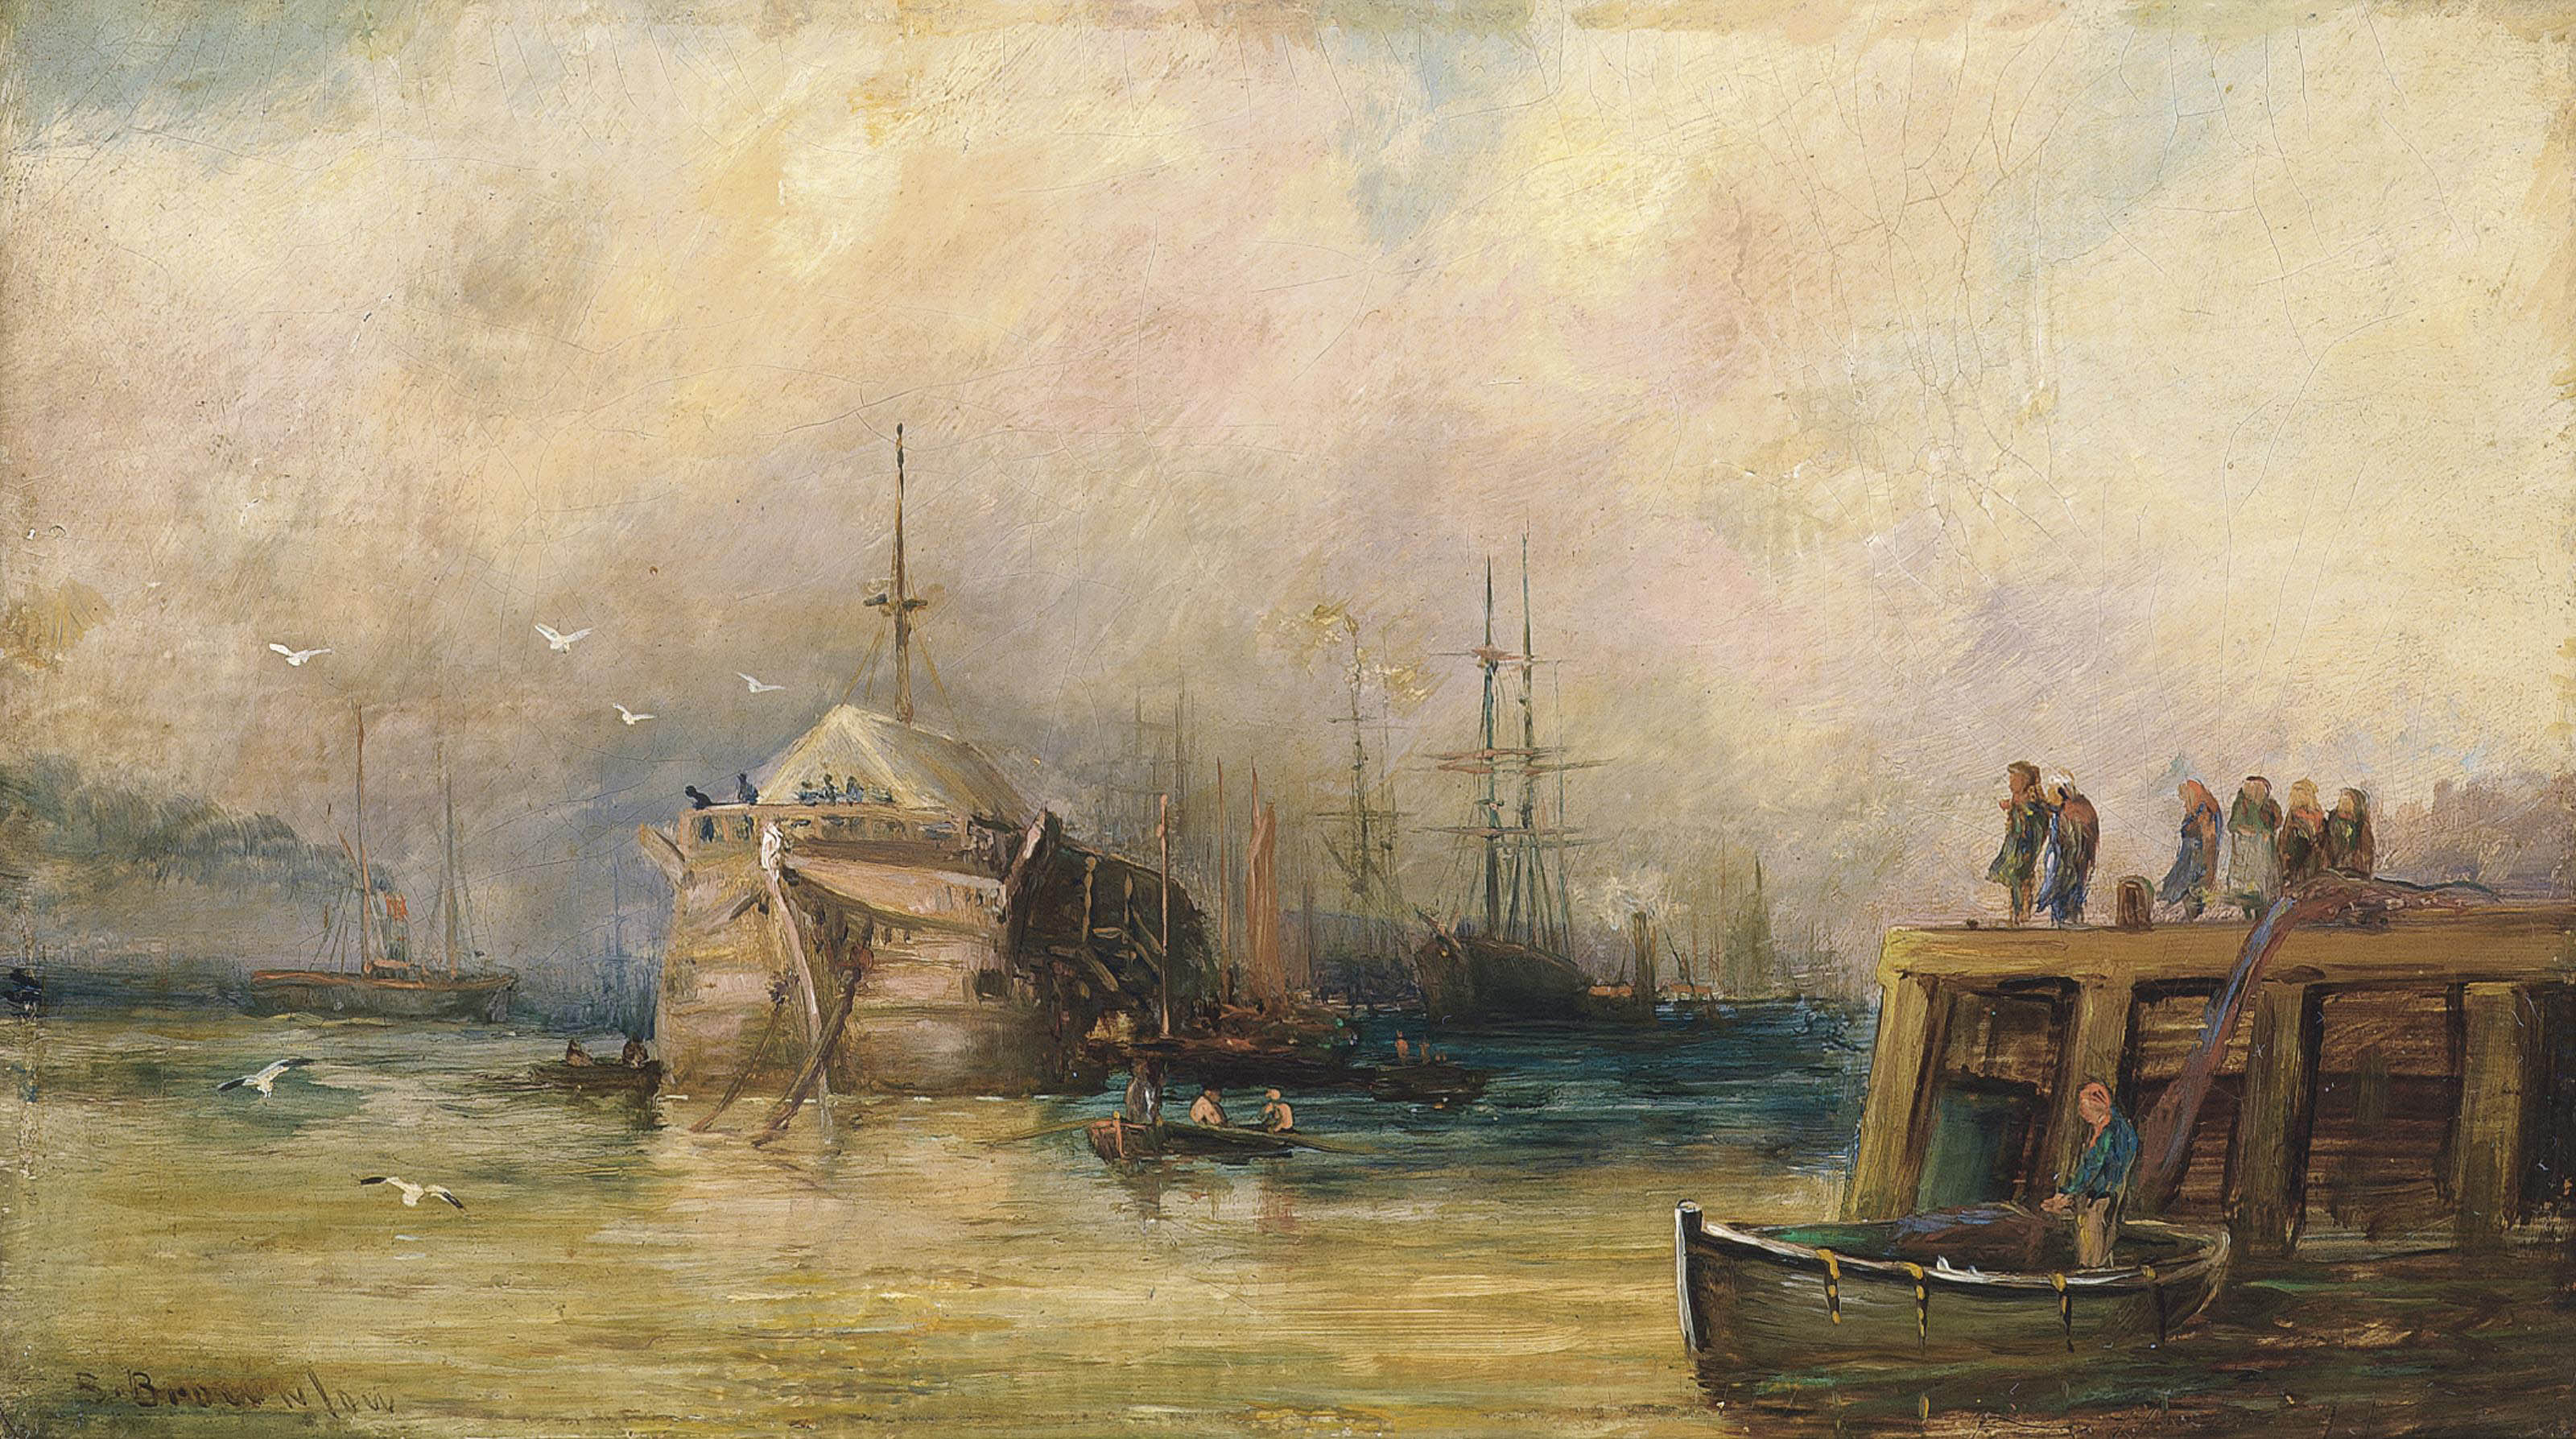 The training ship Wellesley and other shipping on the Tyne